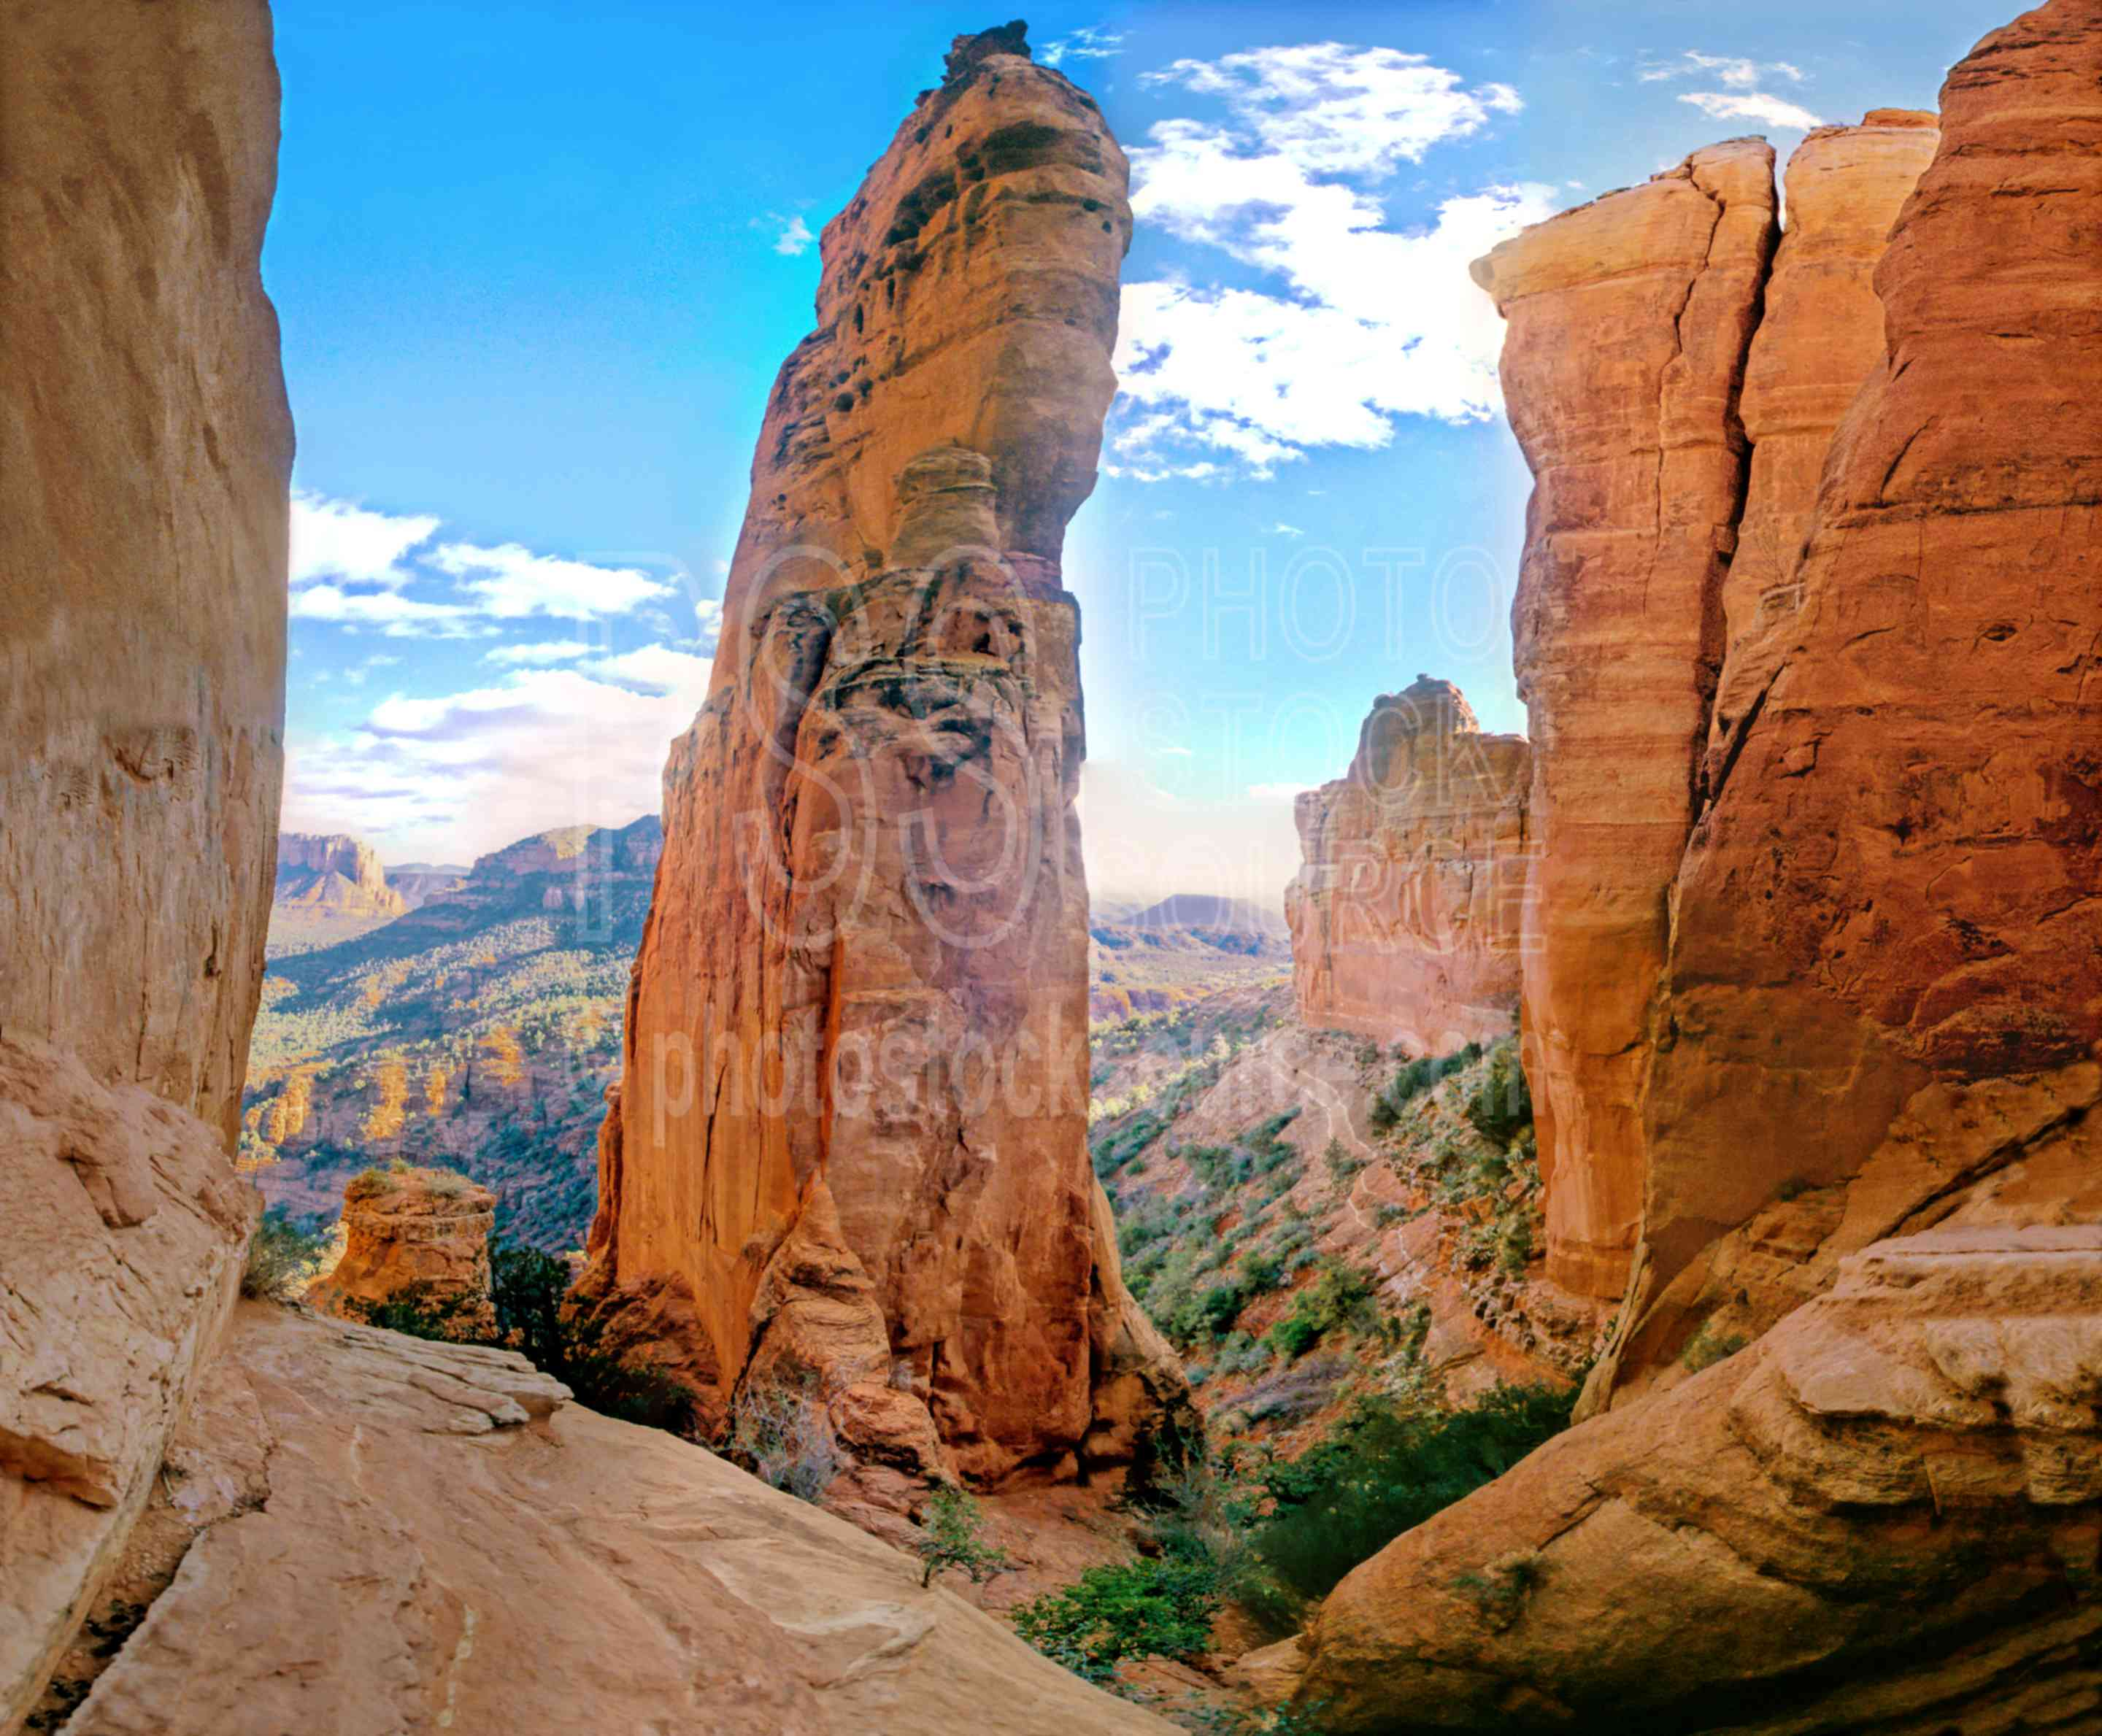 From Cathedral Rock,panorama,cathedral rock,monolith,usas,churches,religion